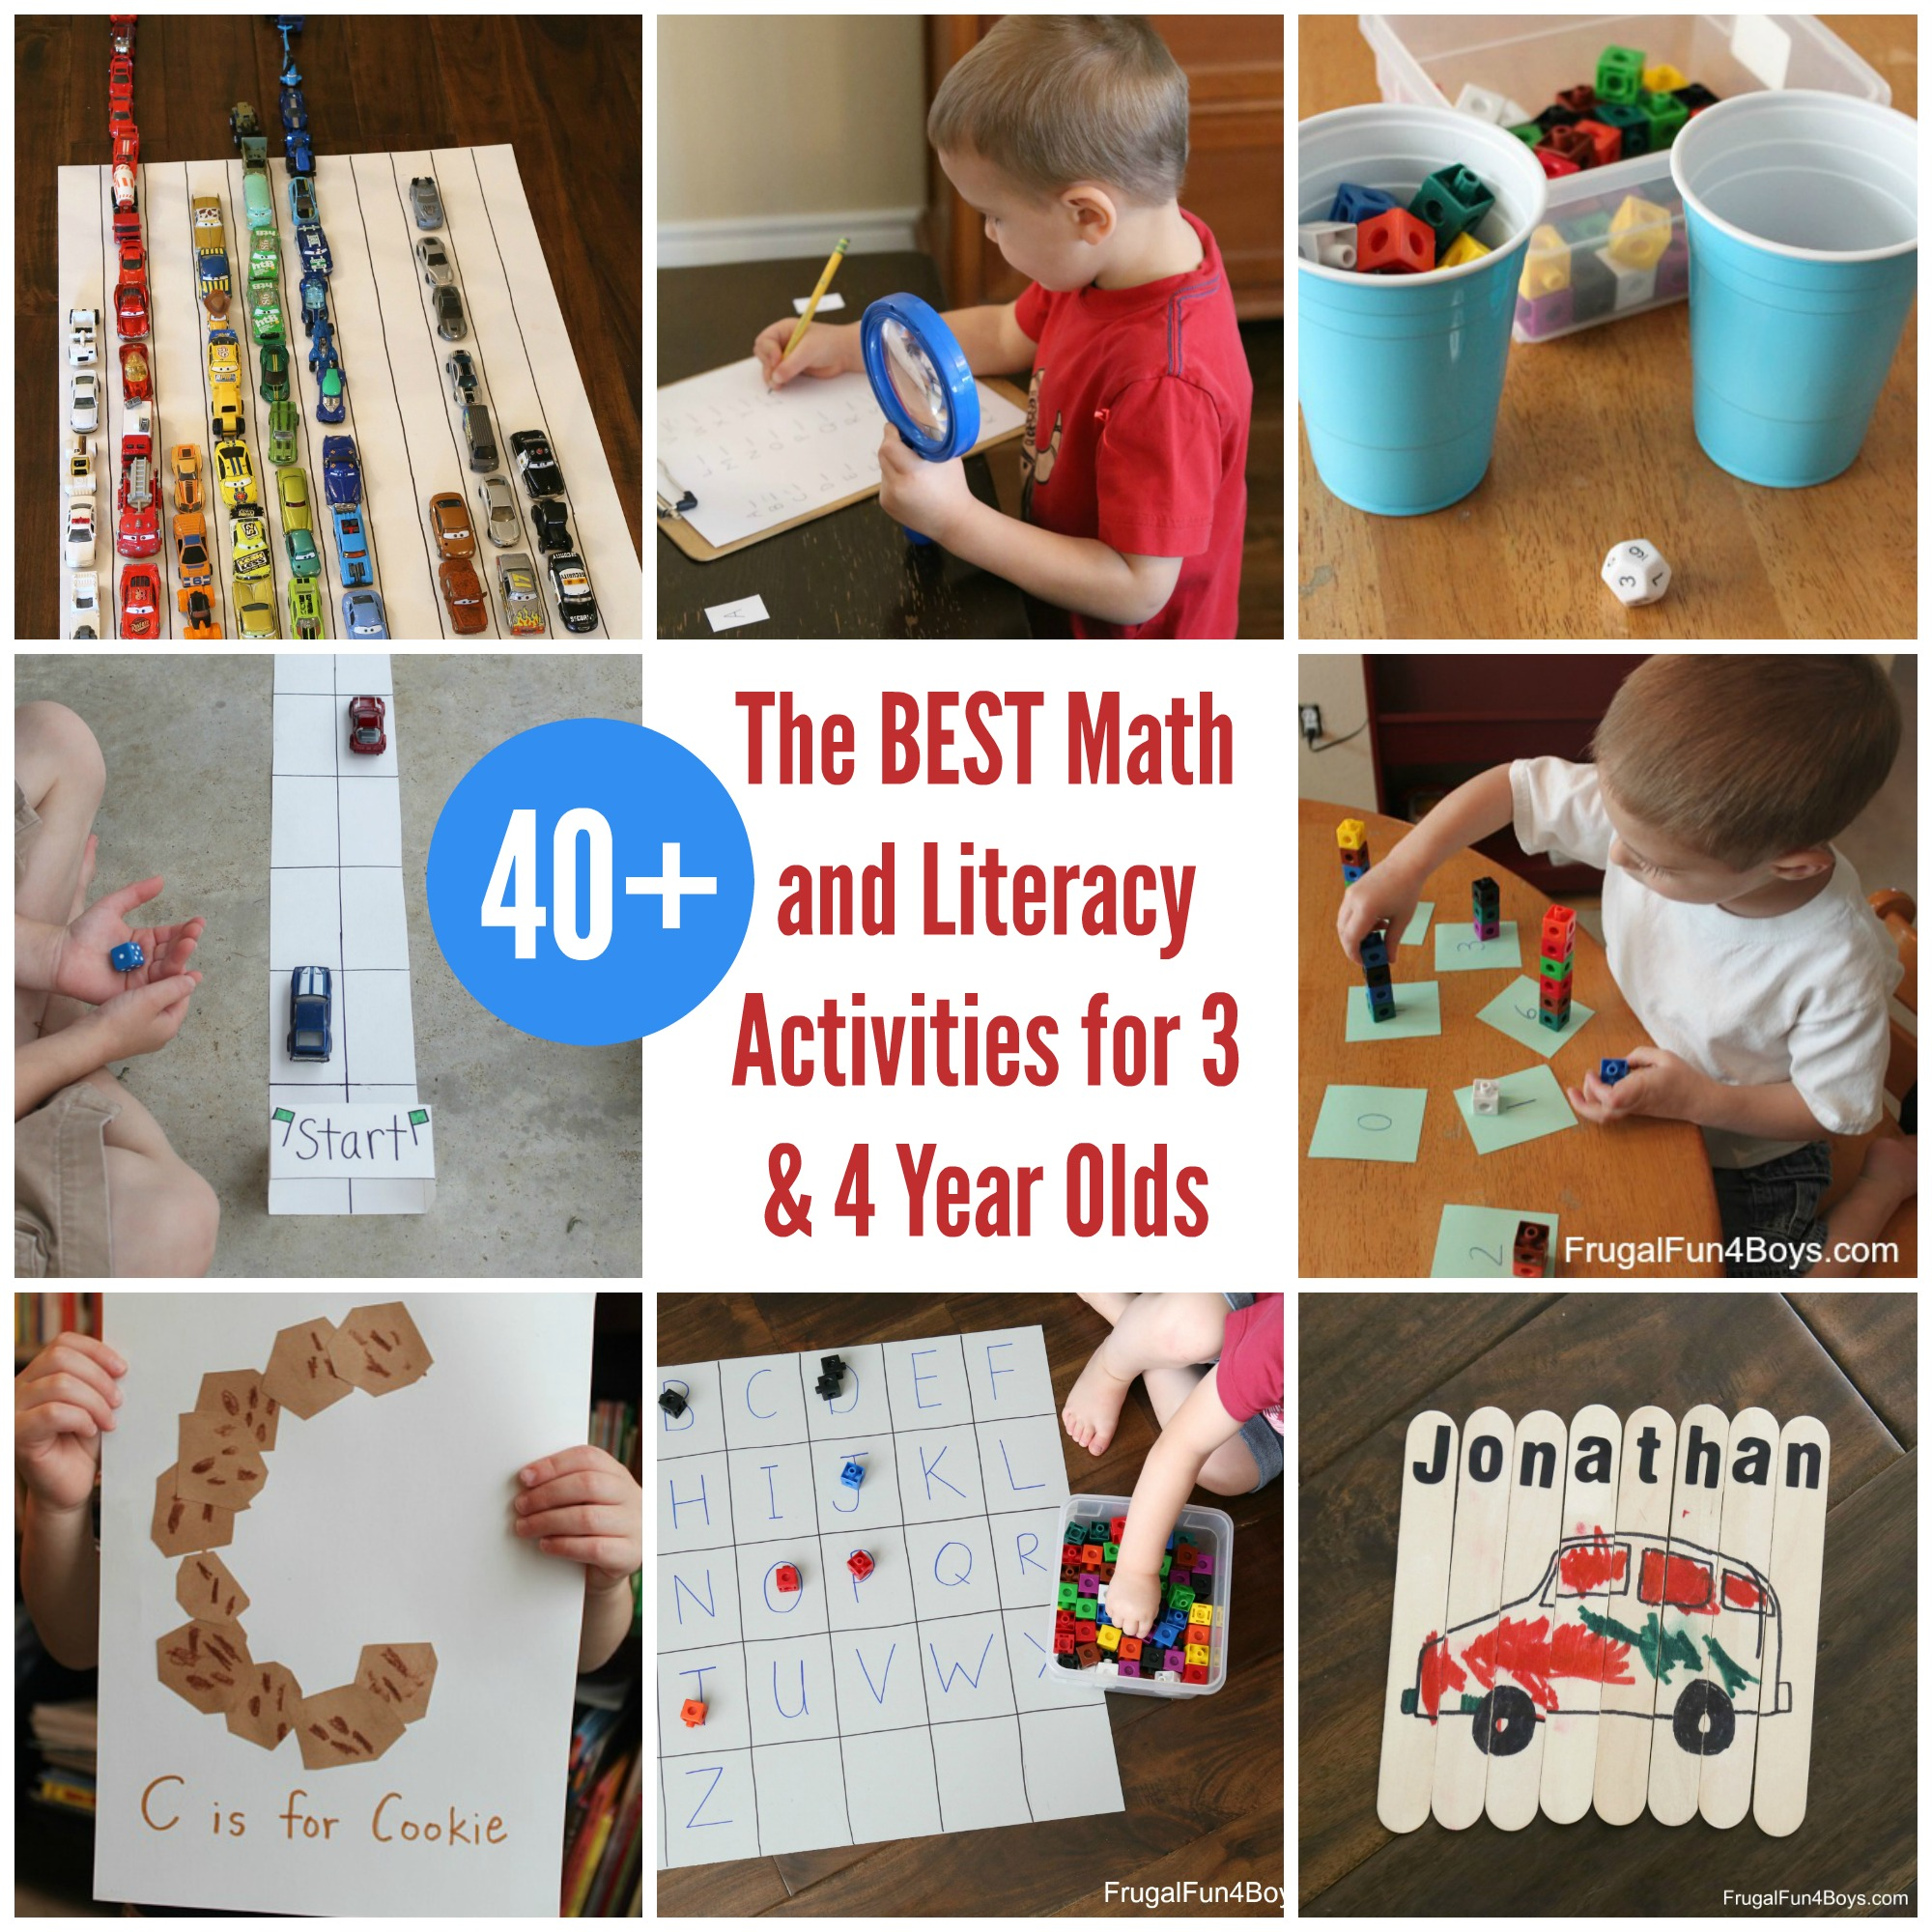 The Best Math And Literacy Activities For Preschoolers 3 Amp 4 Year Olds